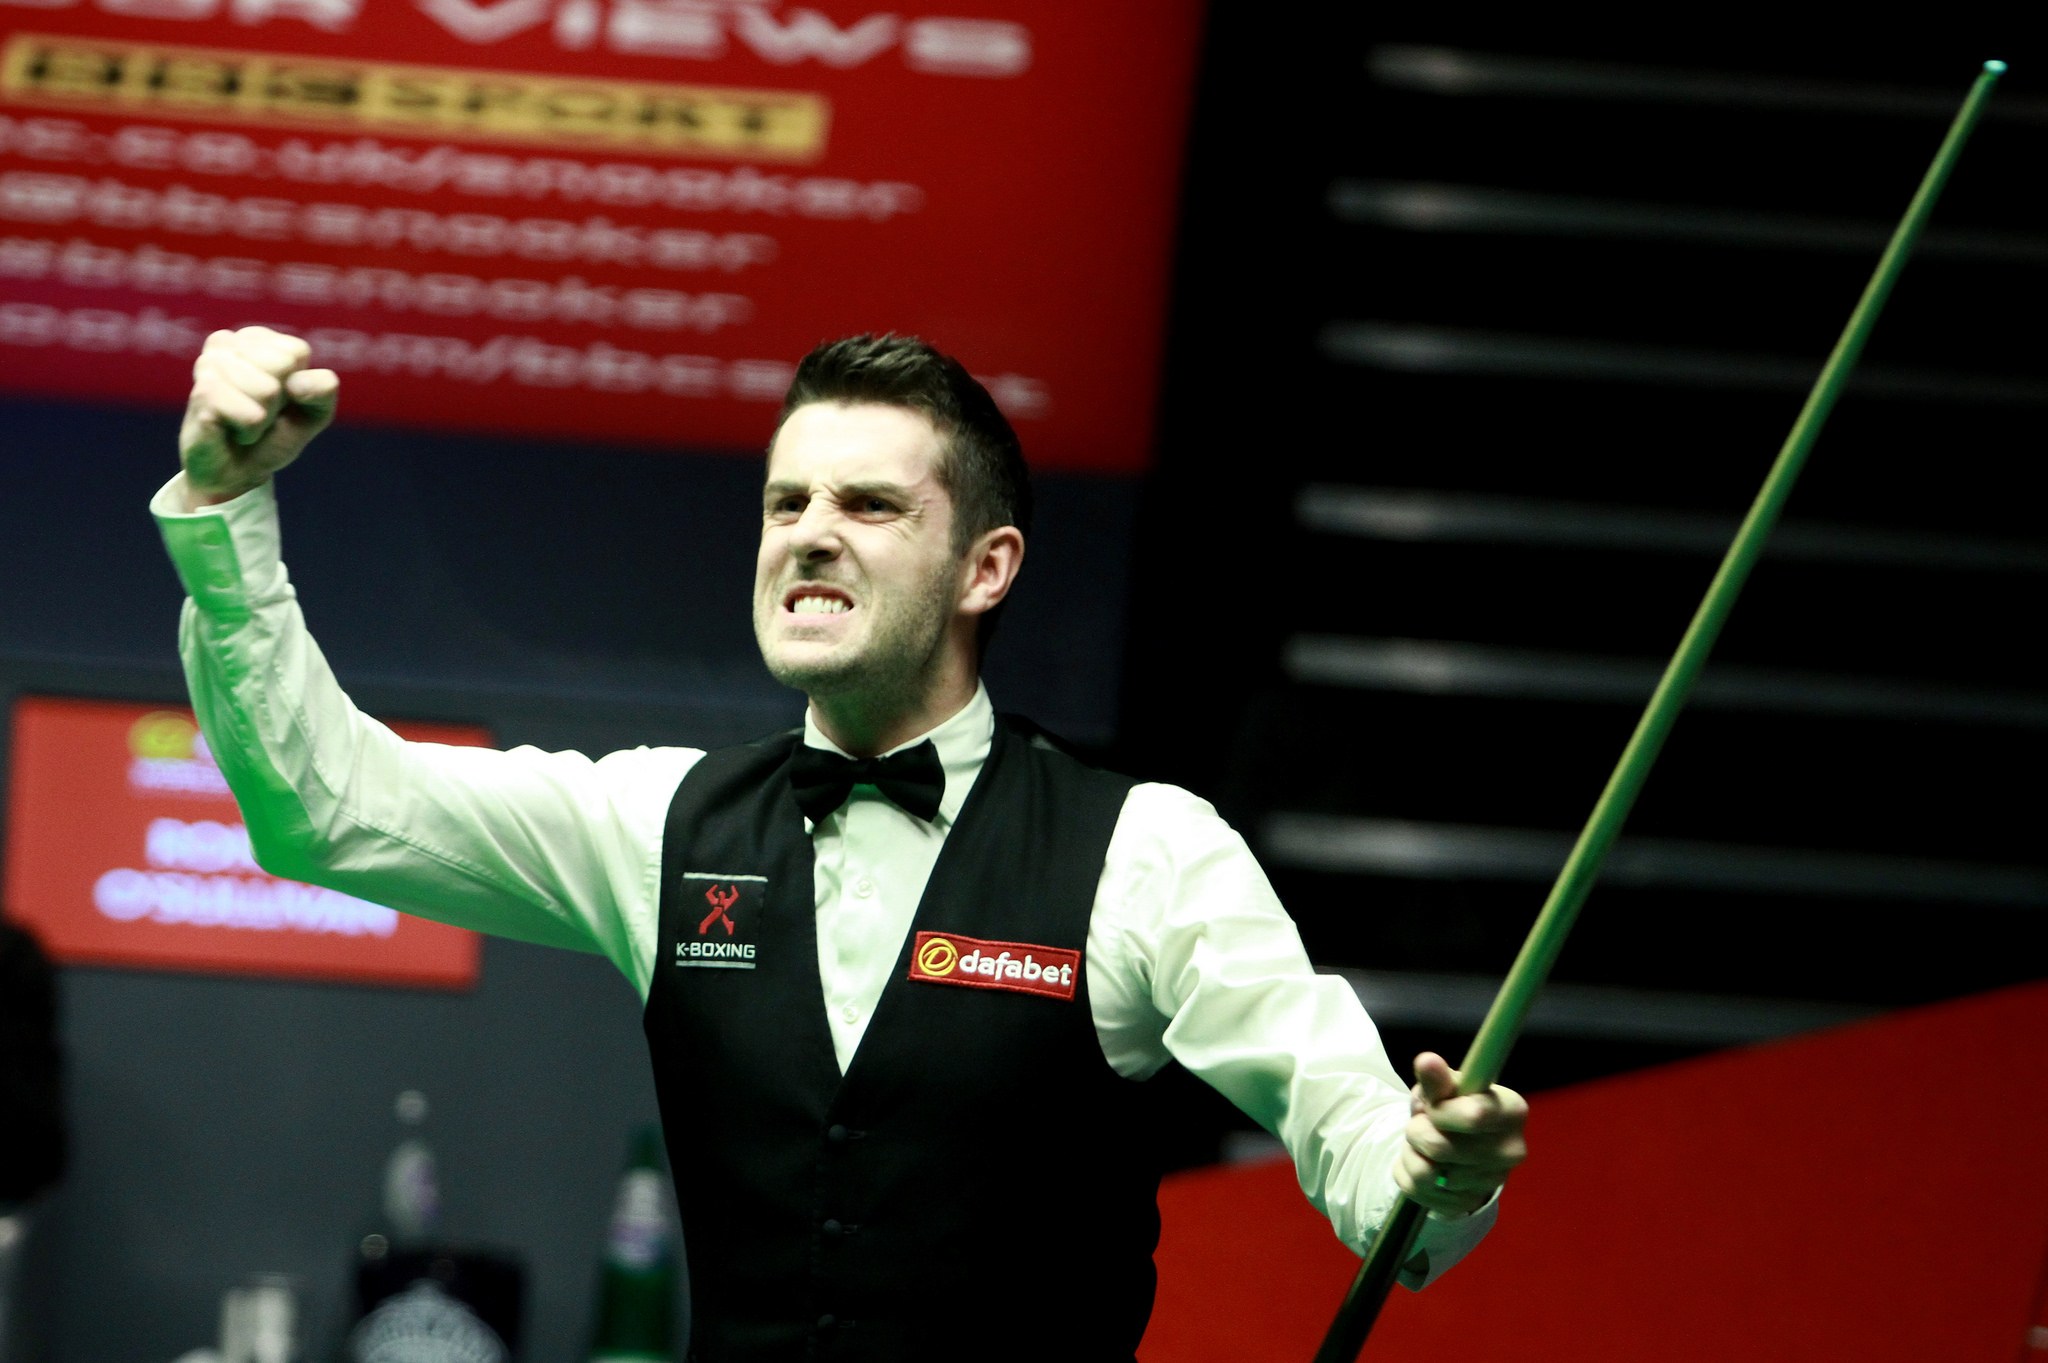 Mark Selby celebrates potting a black that sealed his astonishing 18-14 win over Ronnie O'Sullivan in the 2014 final. (Picture via World Snooker)